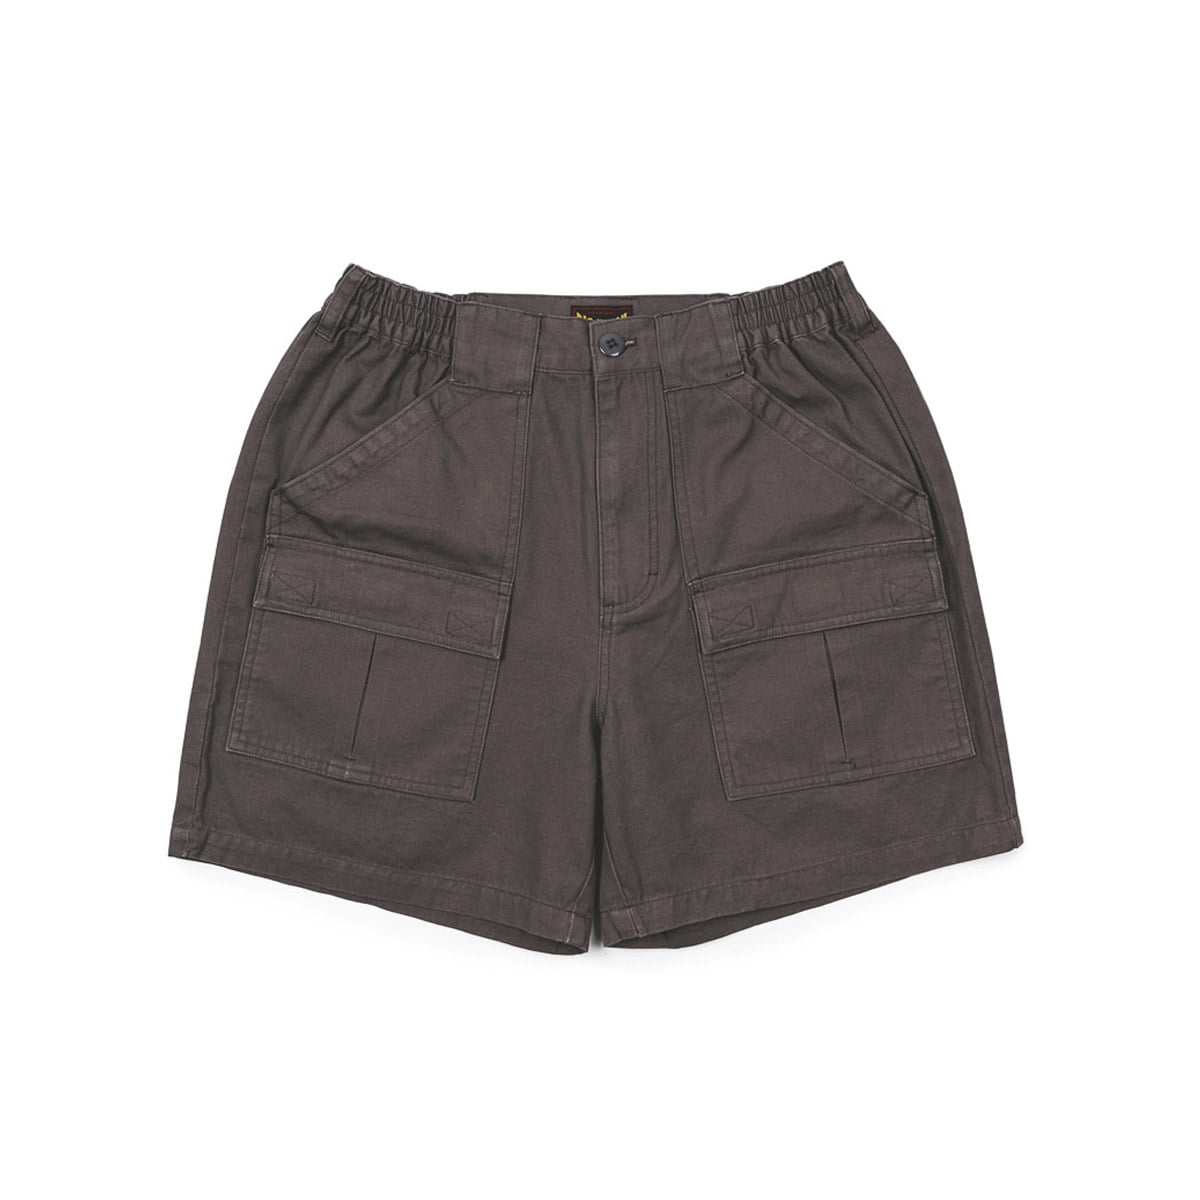 [BIG UNION] CARGO SHORTS 'CHARCOAL'